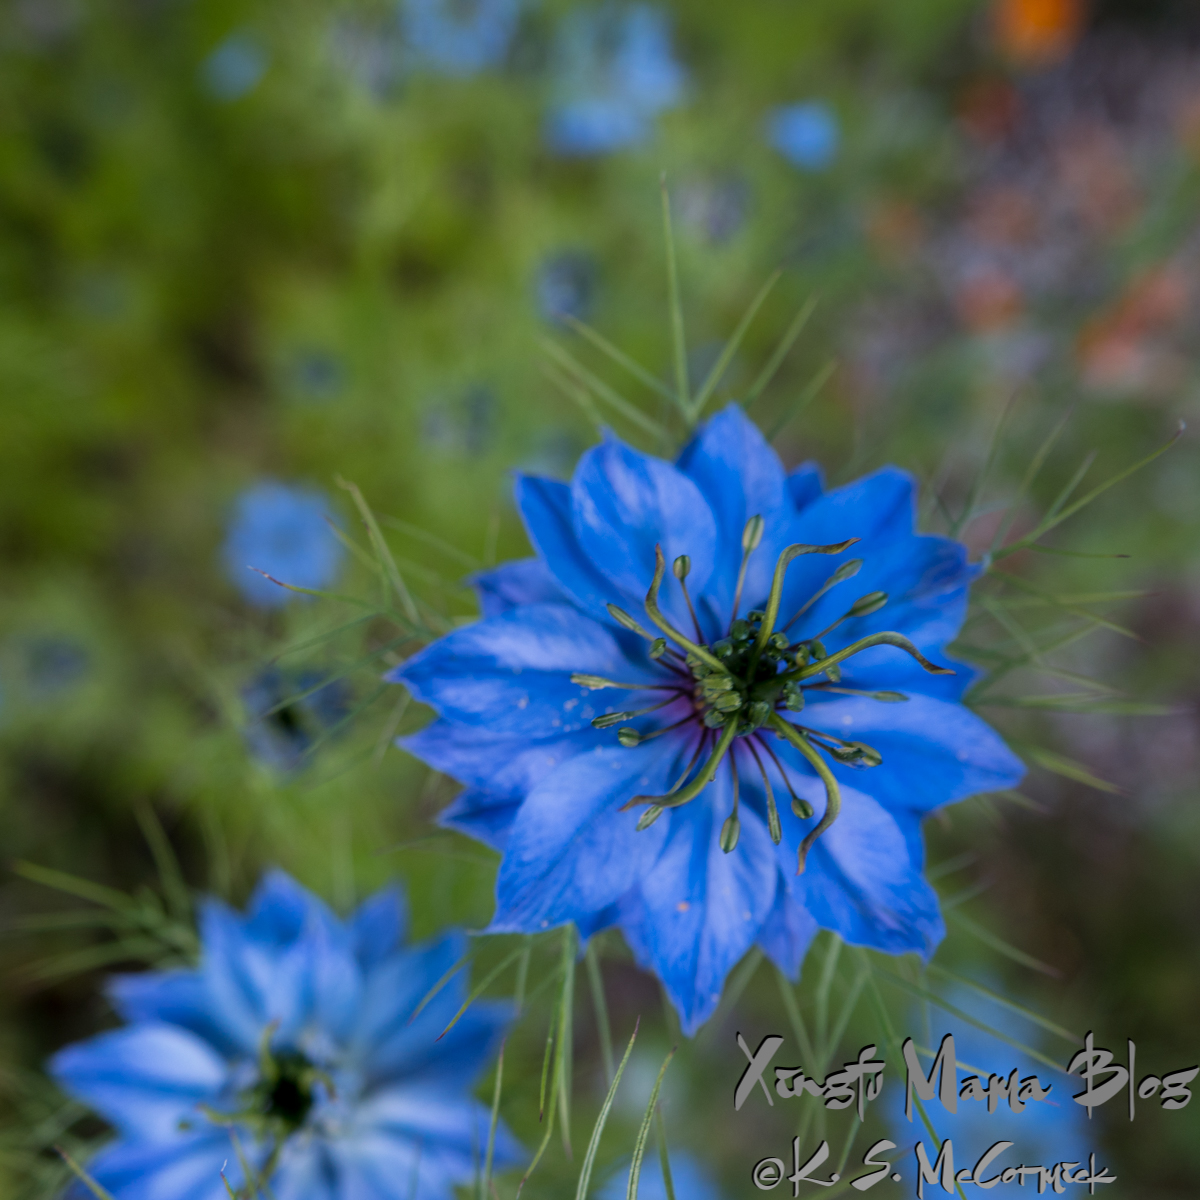 Close up of a blue flower: Love-in-a-mist.